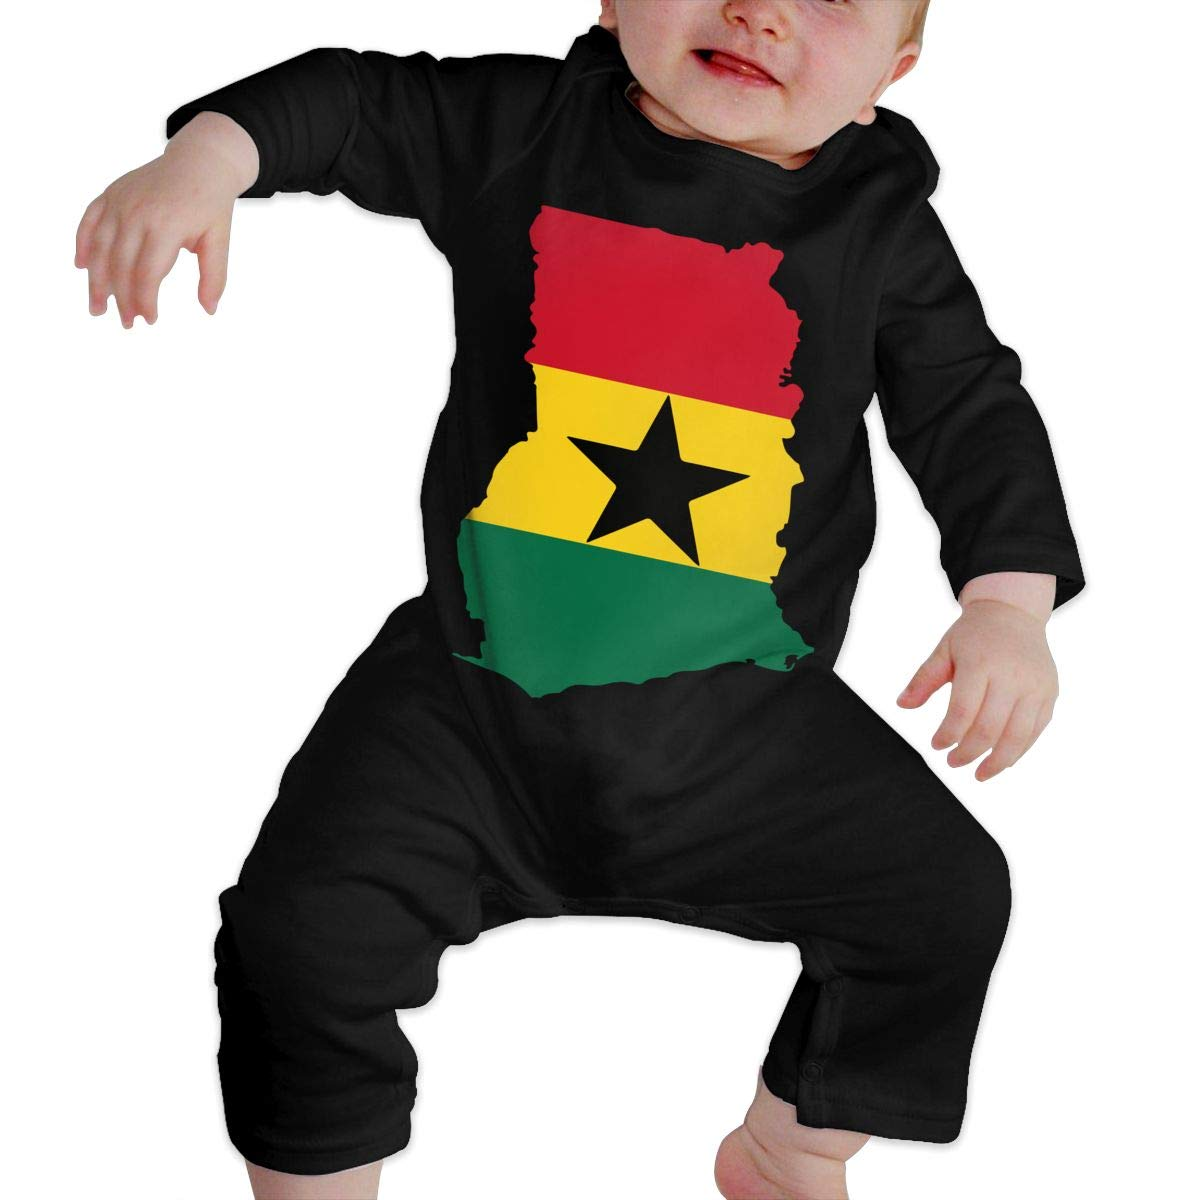 A1BY-5US Infant Baby Girls Cotton Long Sleeve Ghana Flag 1 Baby Clothes Funny Printed Romper Clothes